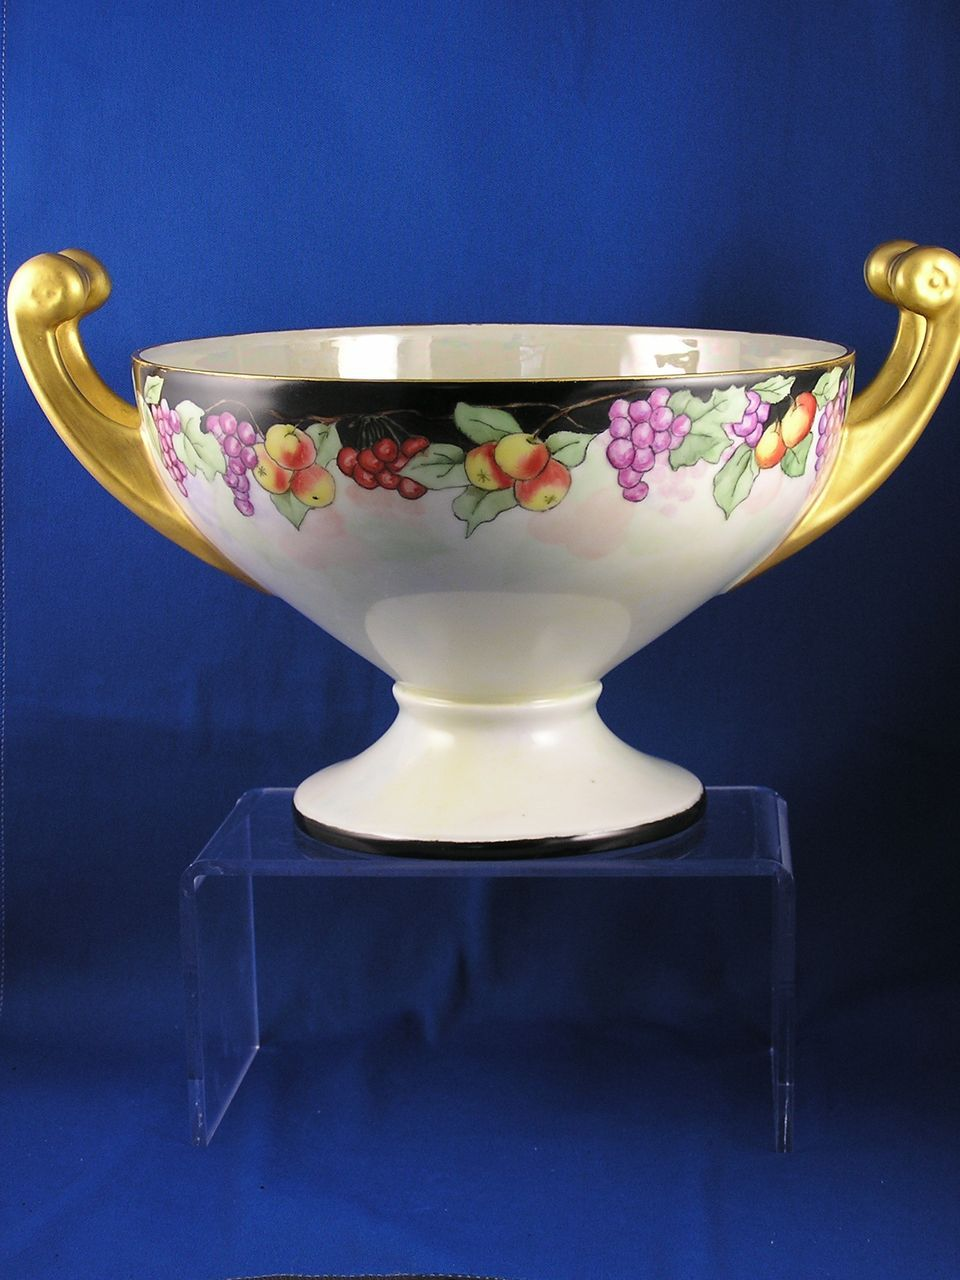 hutschenreuther selb bavaria fruit motif handled centerpiece bowl from darkflowers on ruby lane. Black Bedroom Furniture Sets. Home Design Ideas